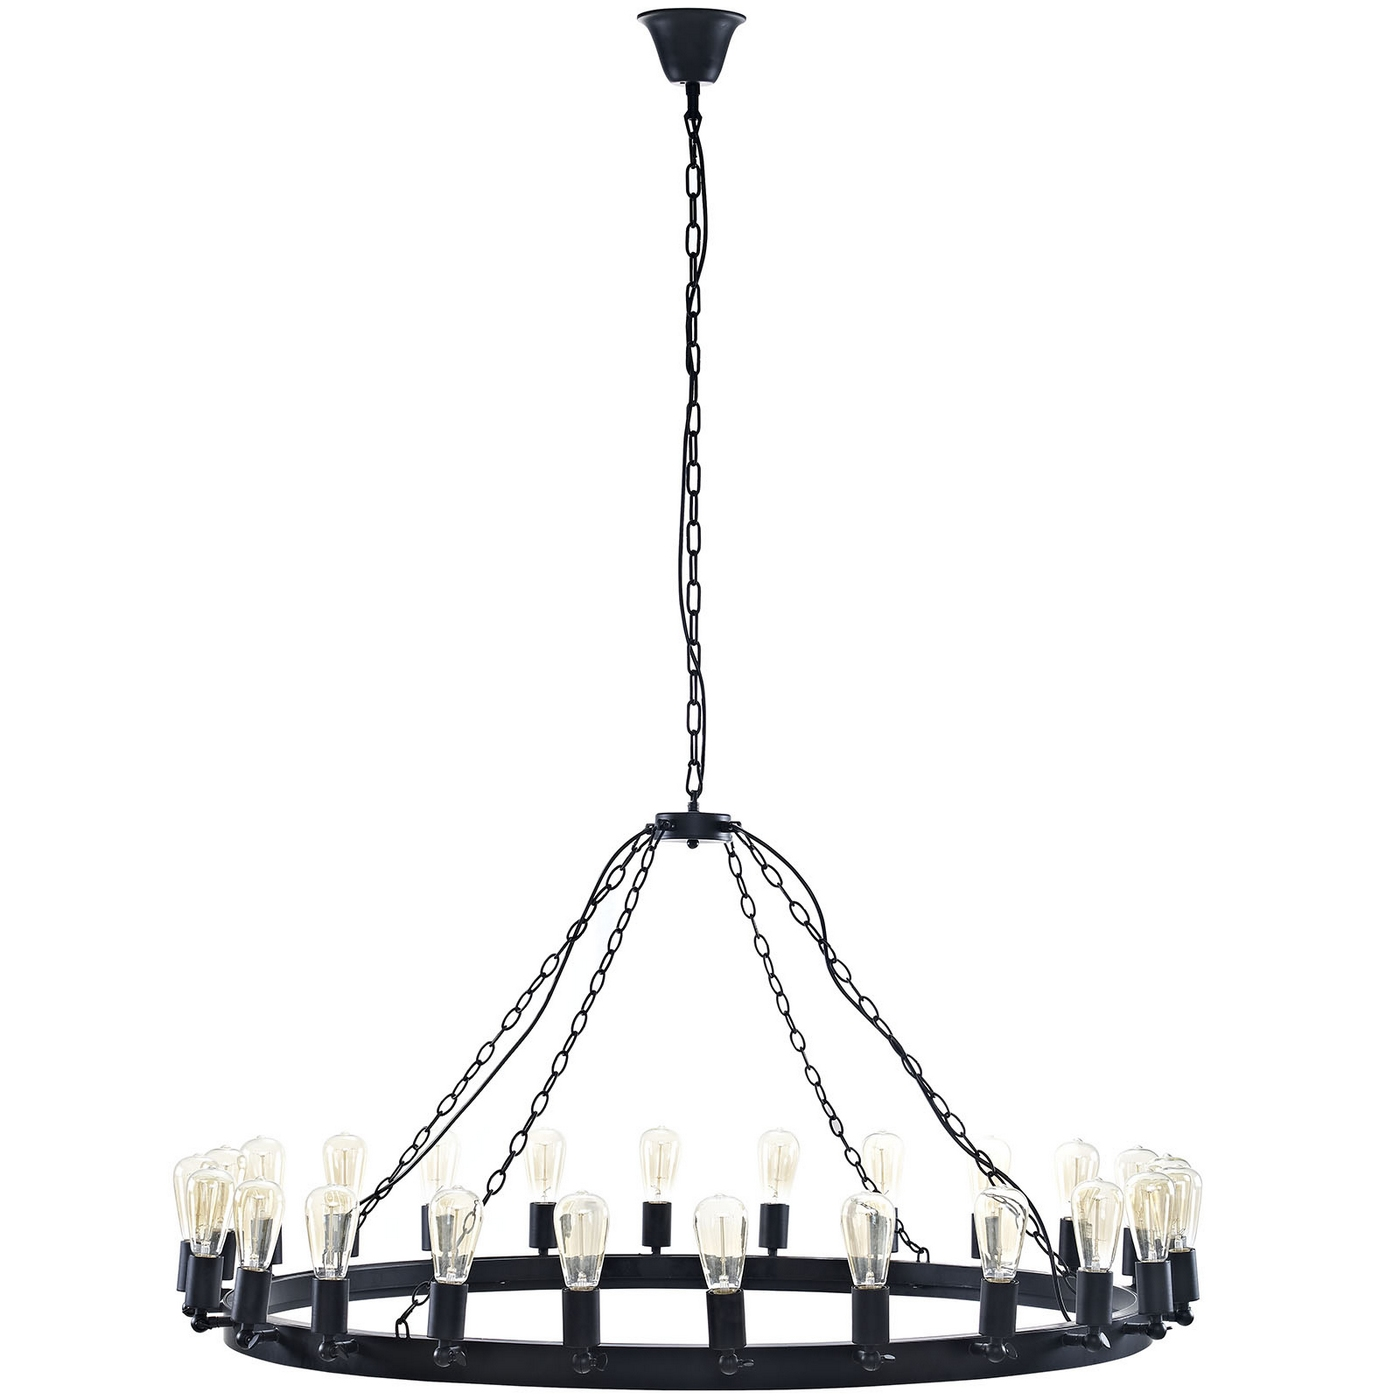 Teleport Industrial 52 Quot Suspension Style 24 Bulb